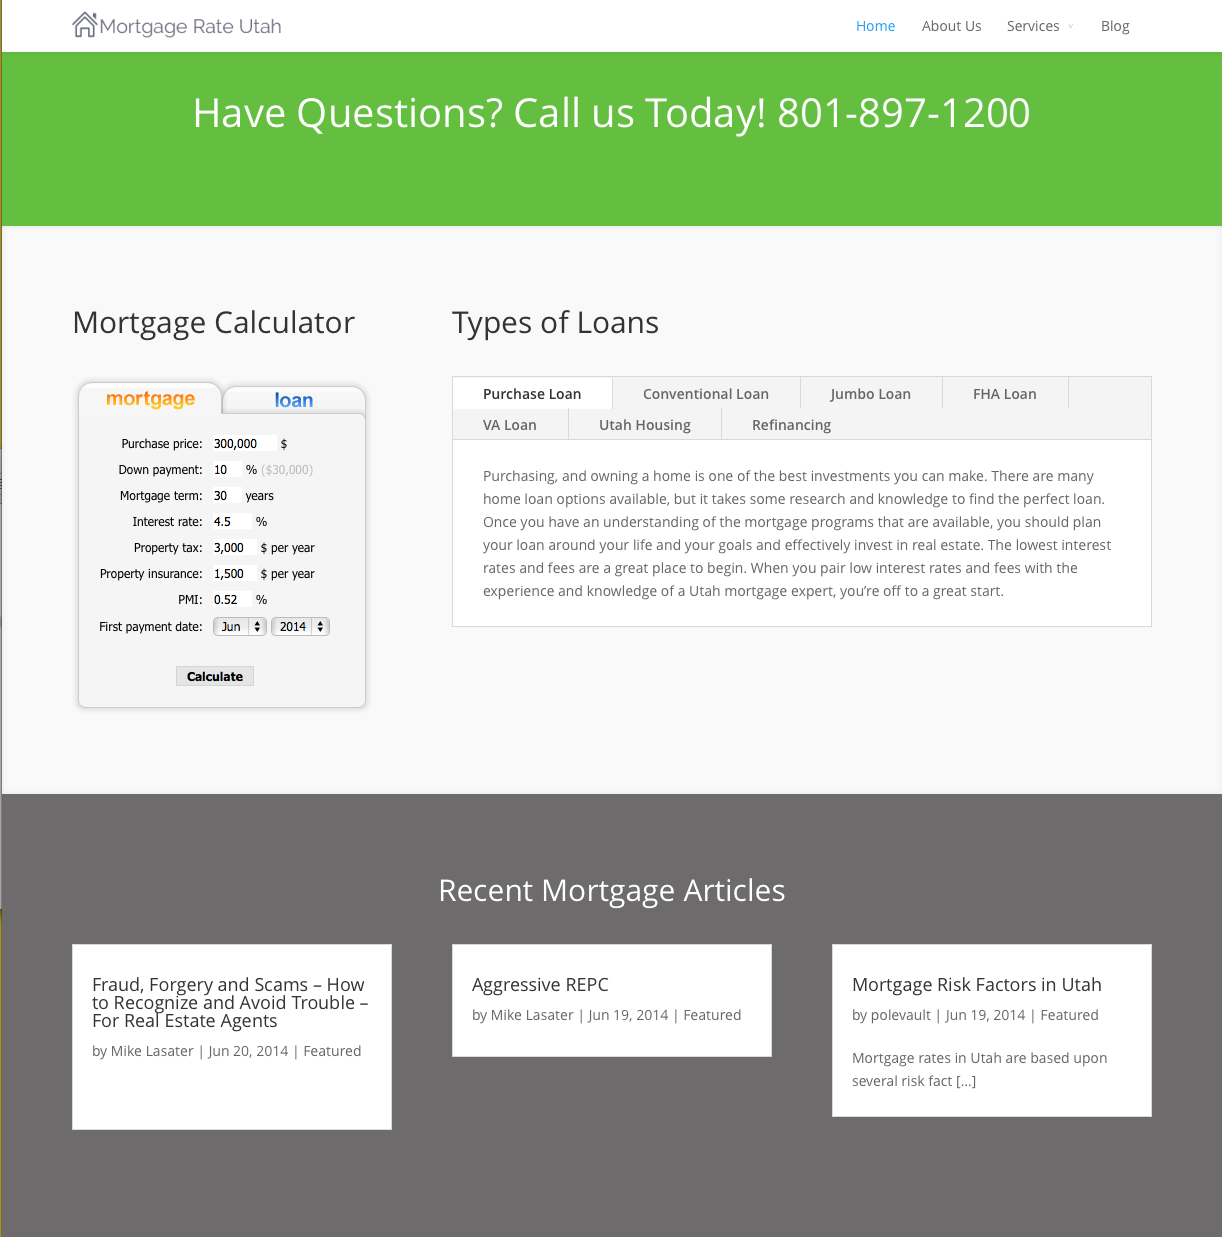 Mortgage Rate Utah Mortgage Calculator